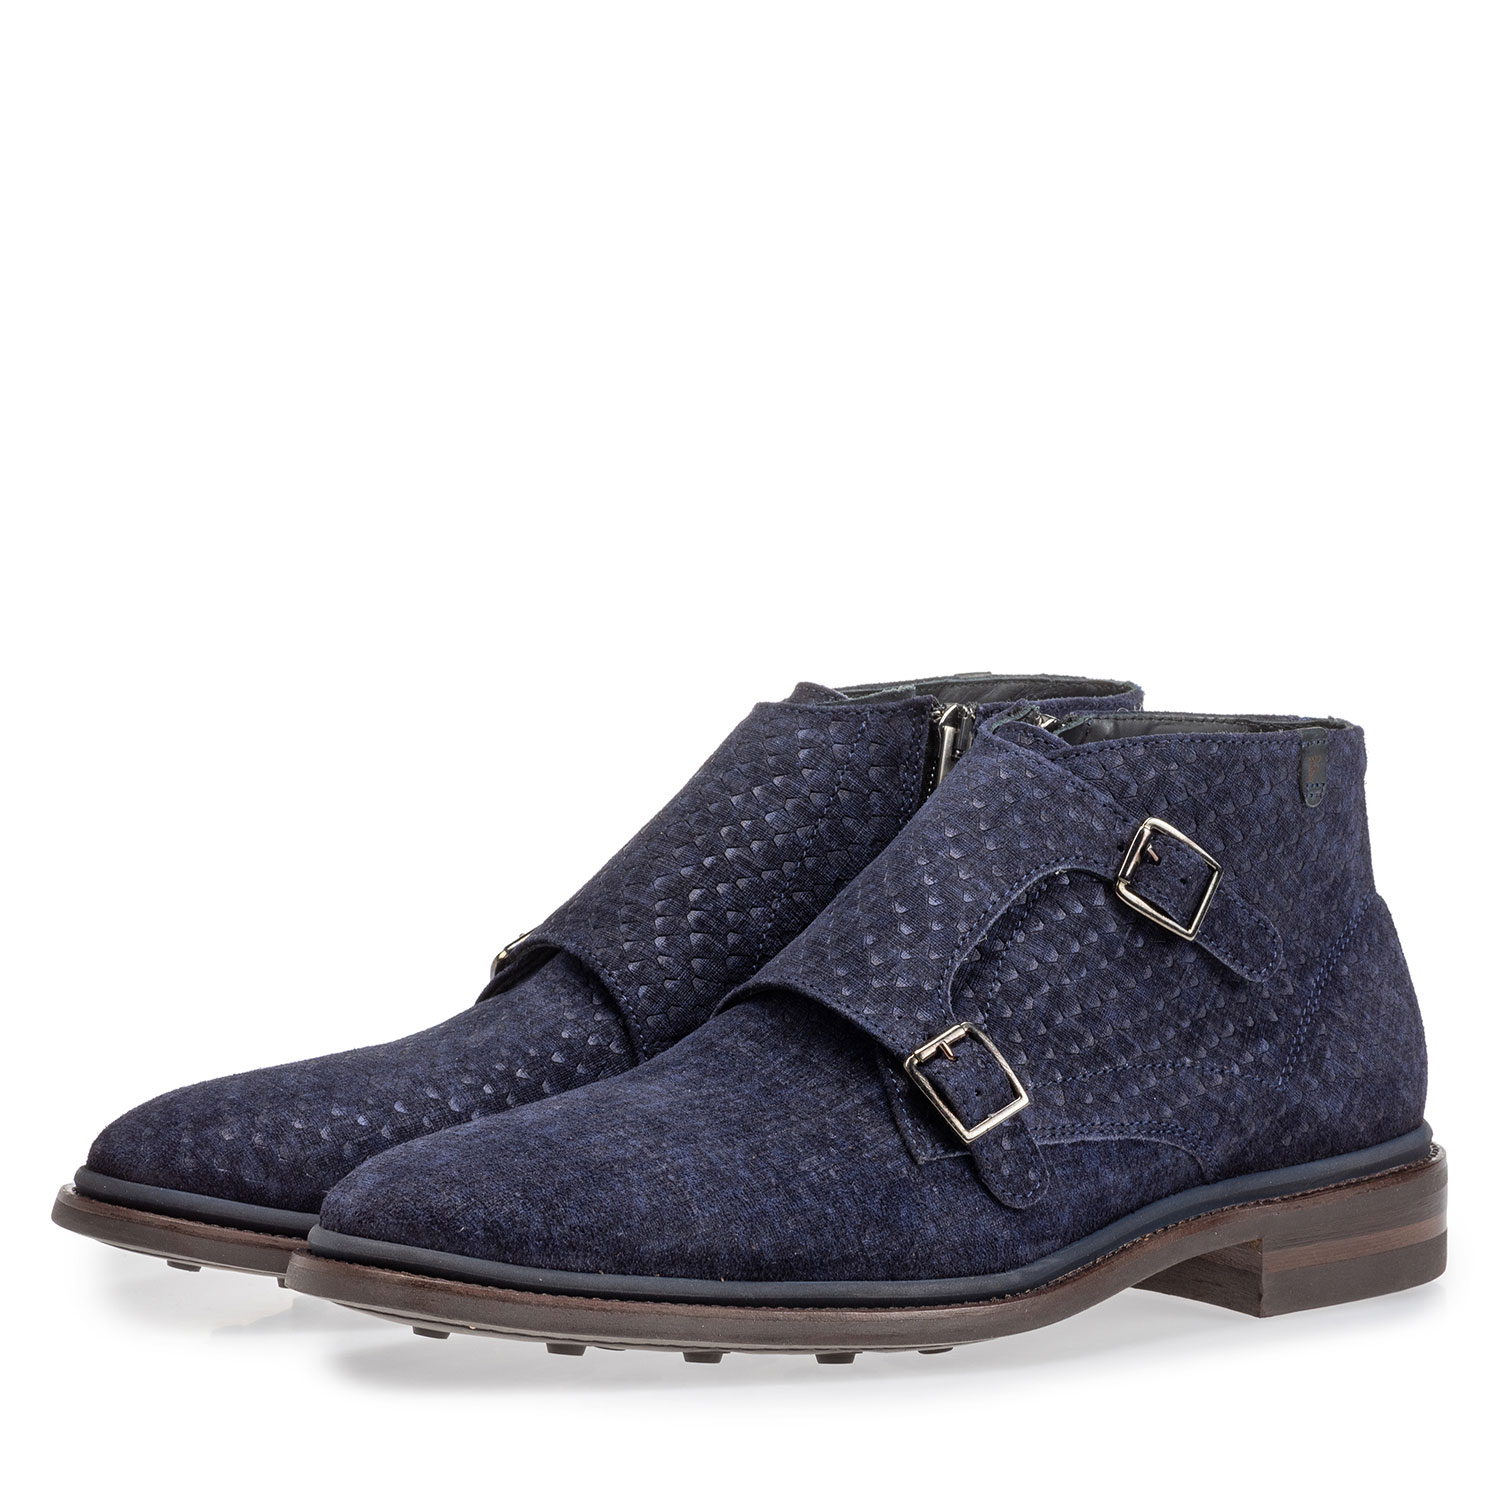 10672/04 - Boot with buckle closure blue